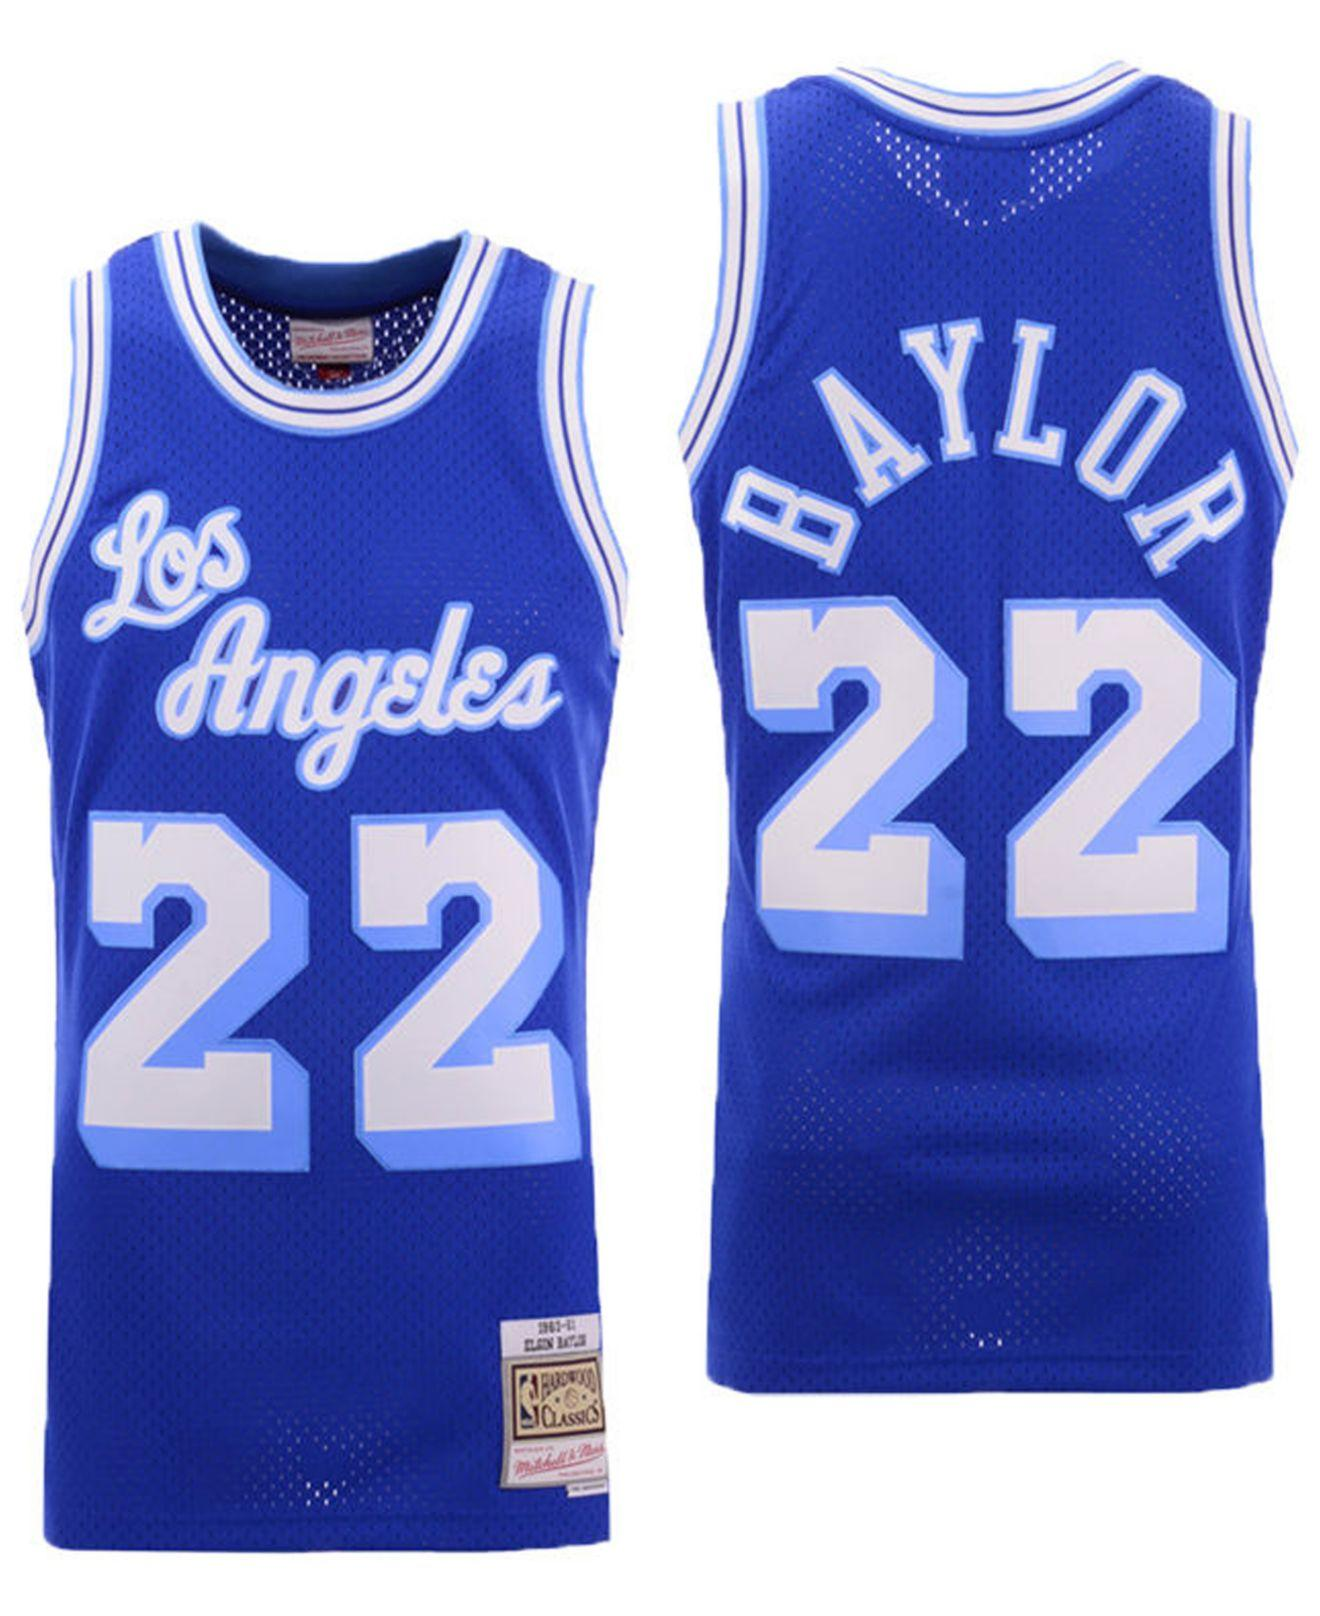 90ab89652fbf Mitchell   Ness. Men s Blue Elgin Baylor Los Angeles Lakers Hardwood Classic  Swingman Jersey